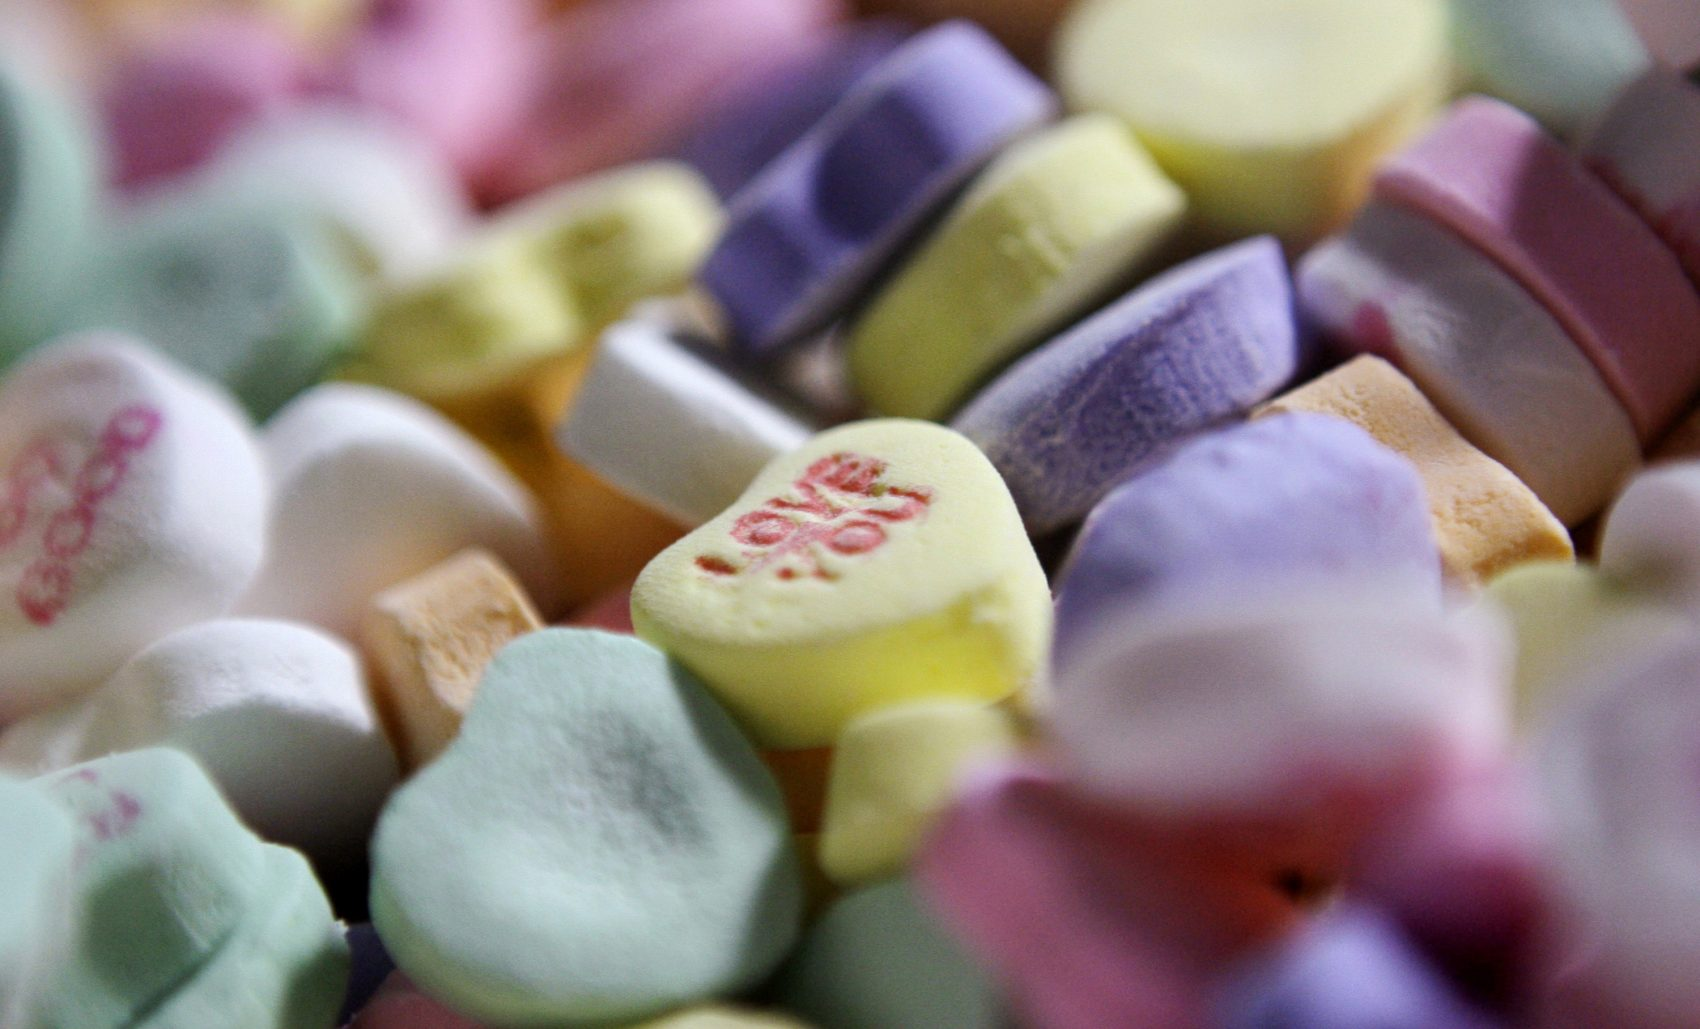 Classic Valentine's Day candy may be missing from store shelves this year